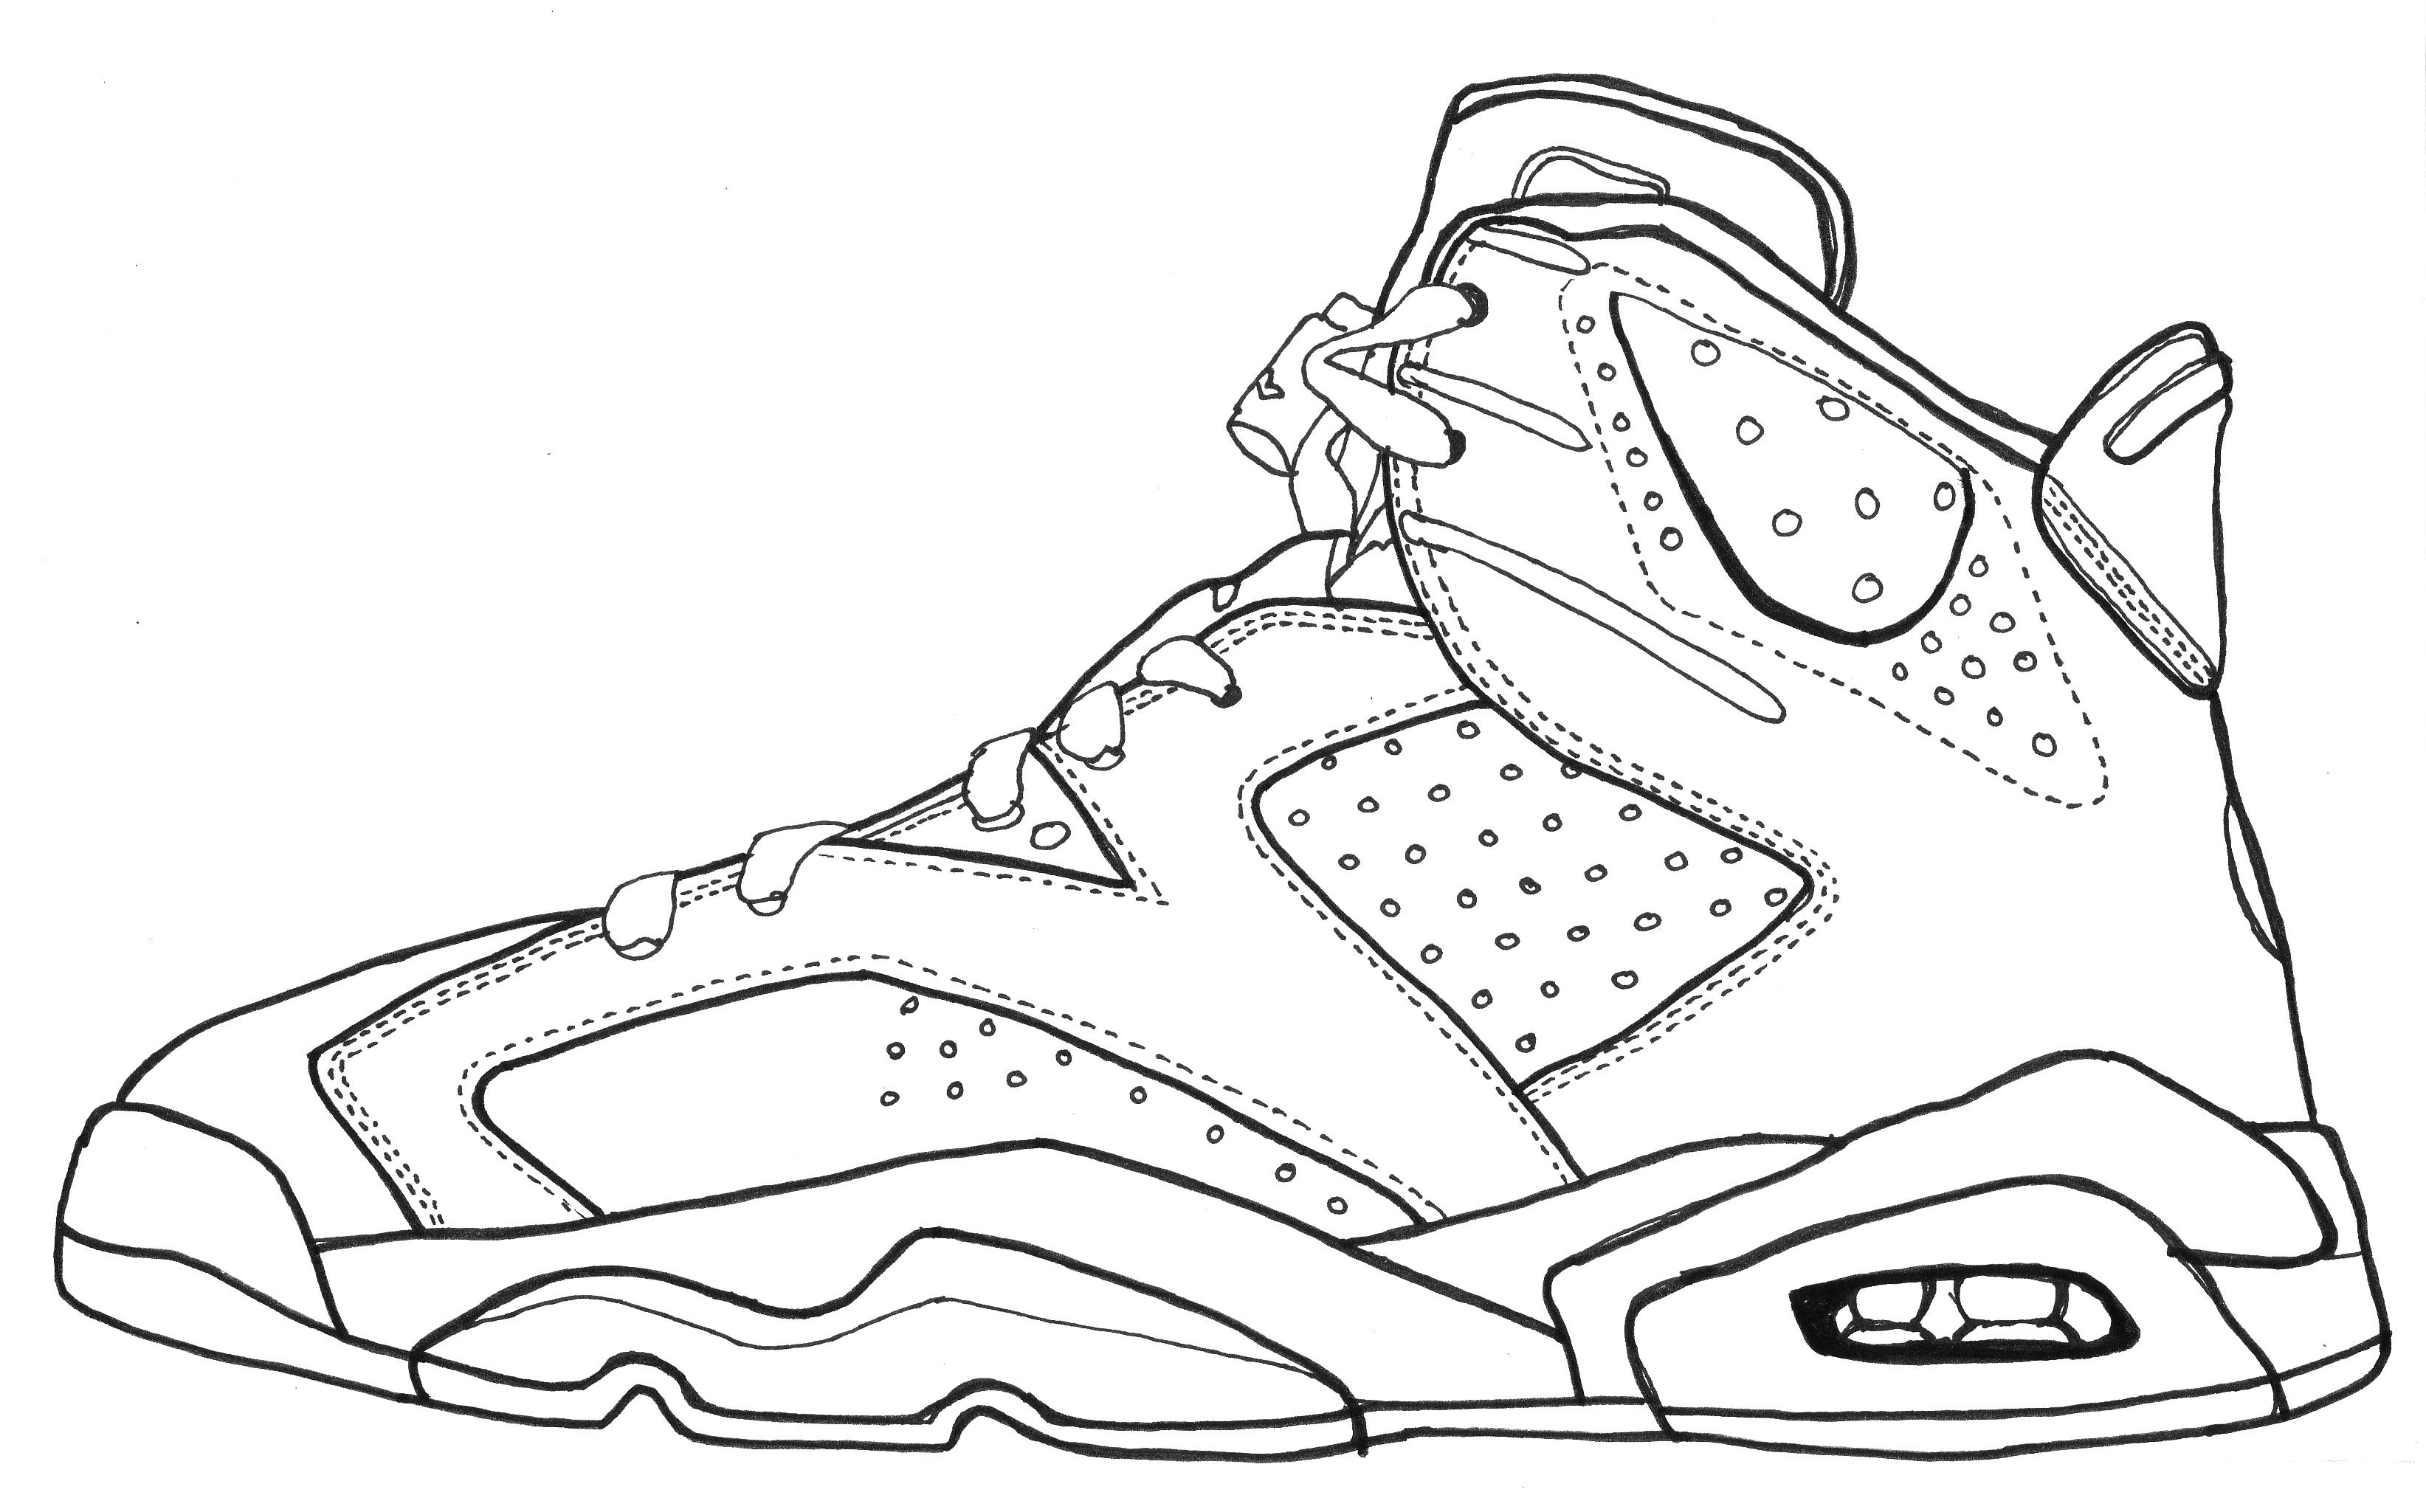 Jordan VI sketch black and white line drawing  513a78912c